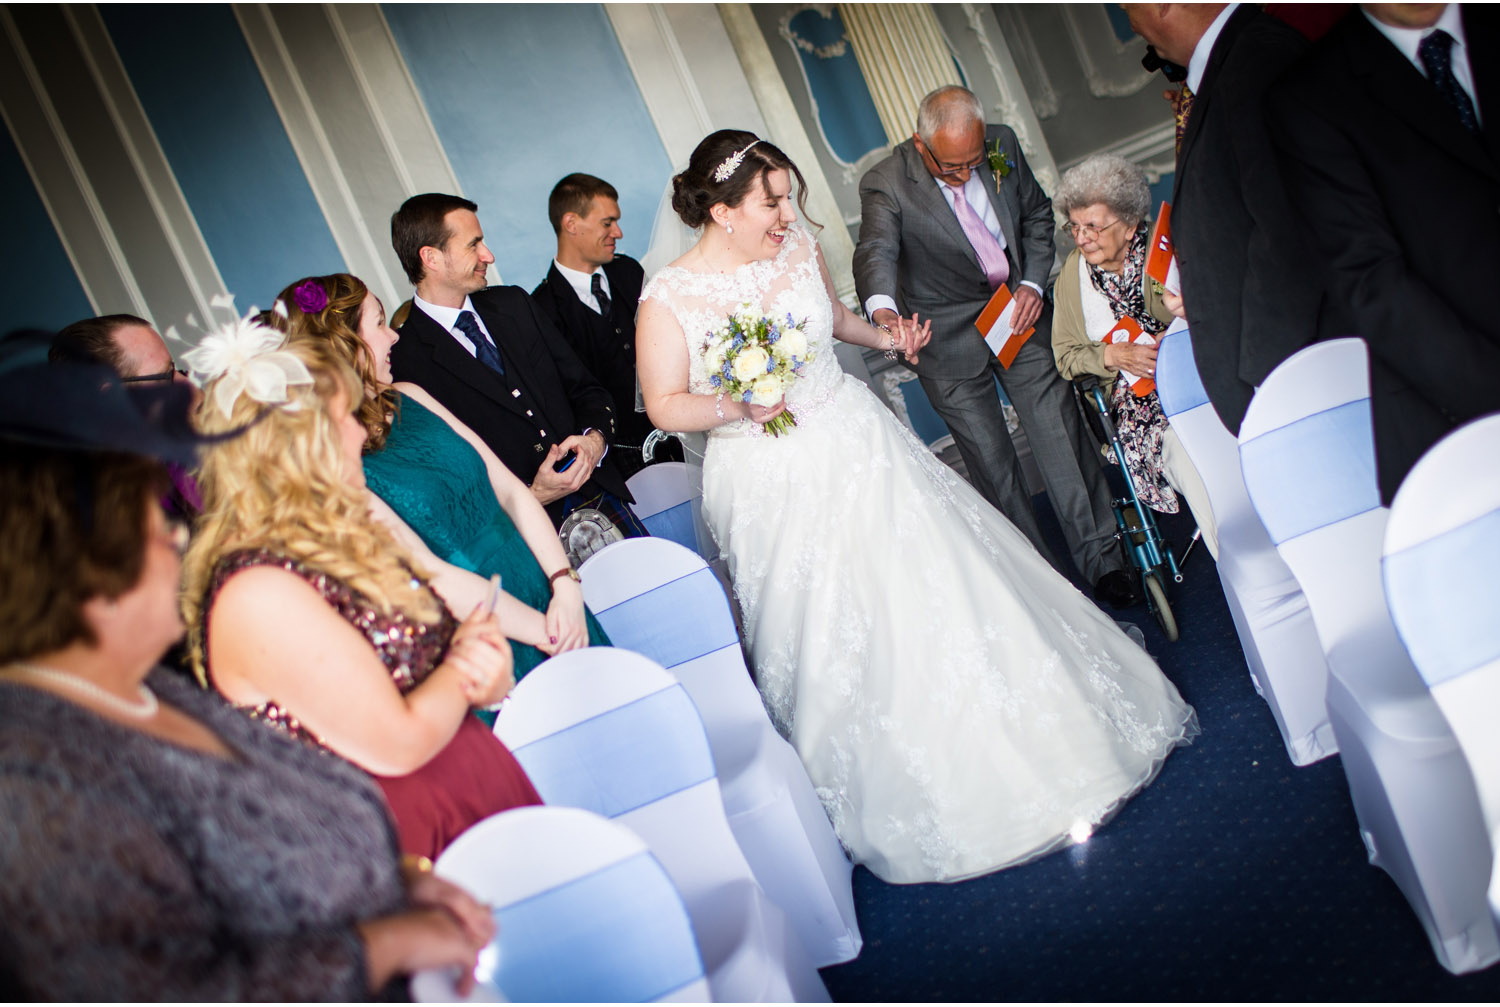 Kate and Rory's wedding sneak preview-4.jpg